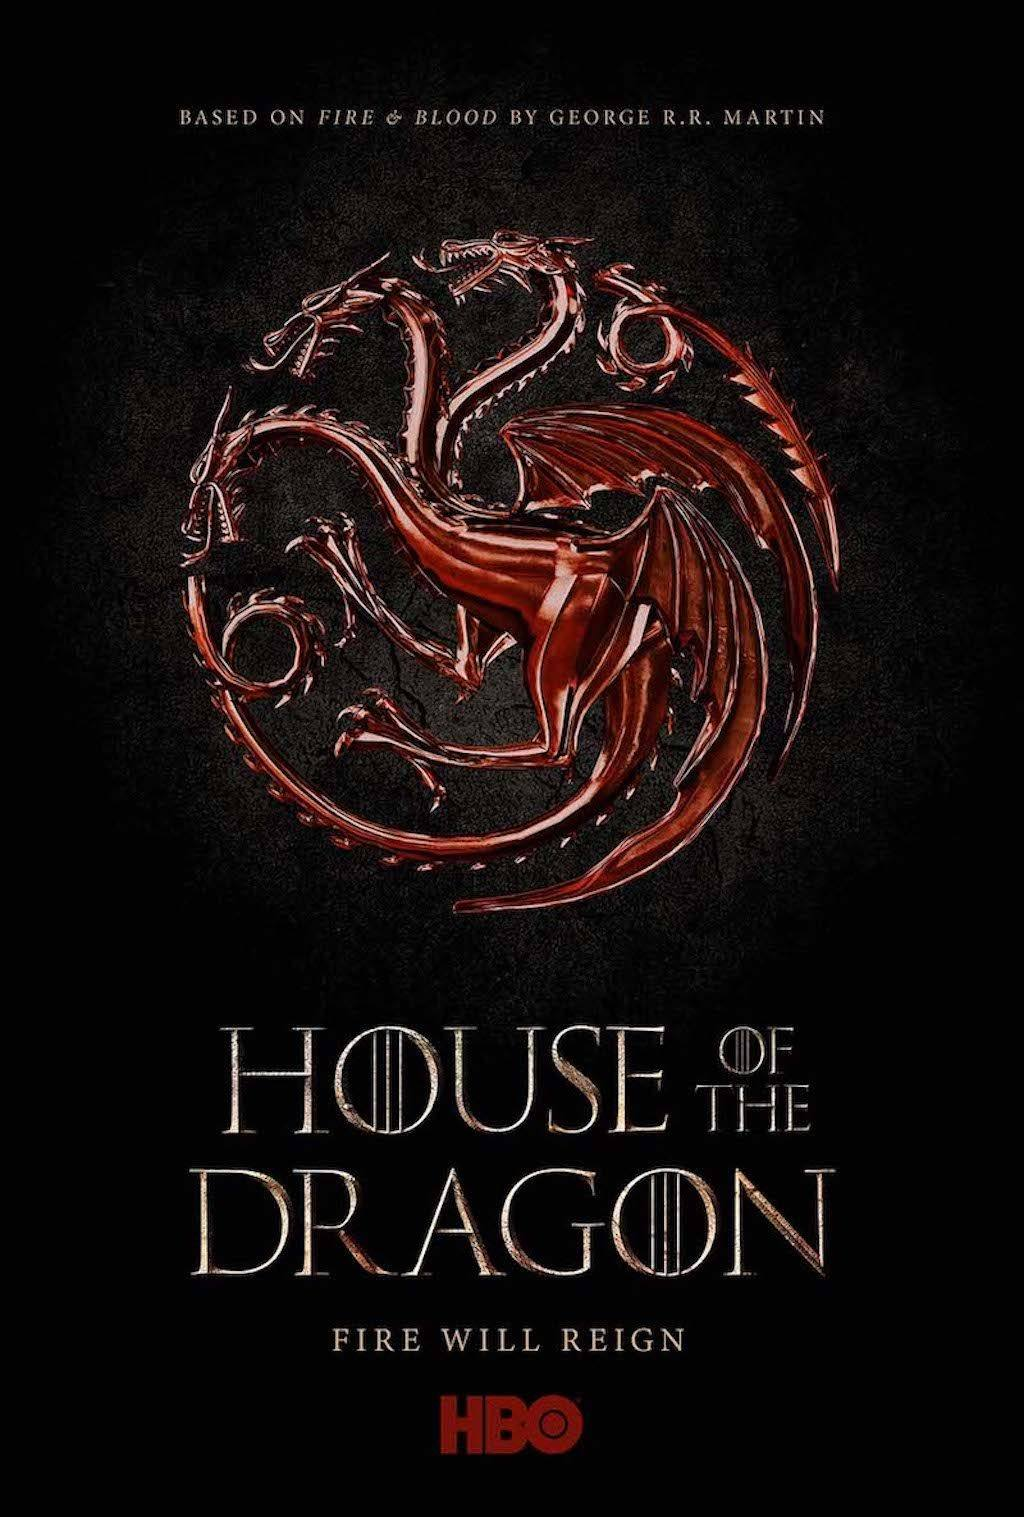 Poster till tv-serien House of the Dragon.